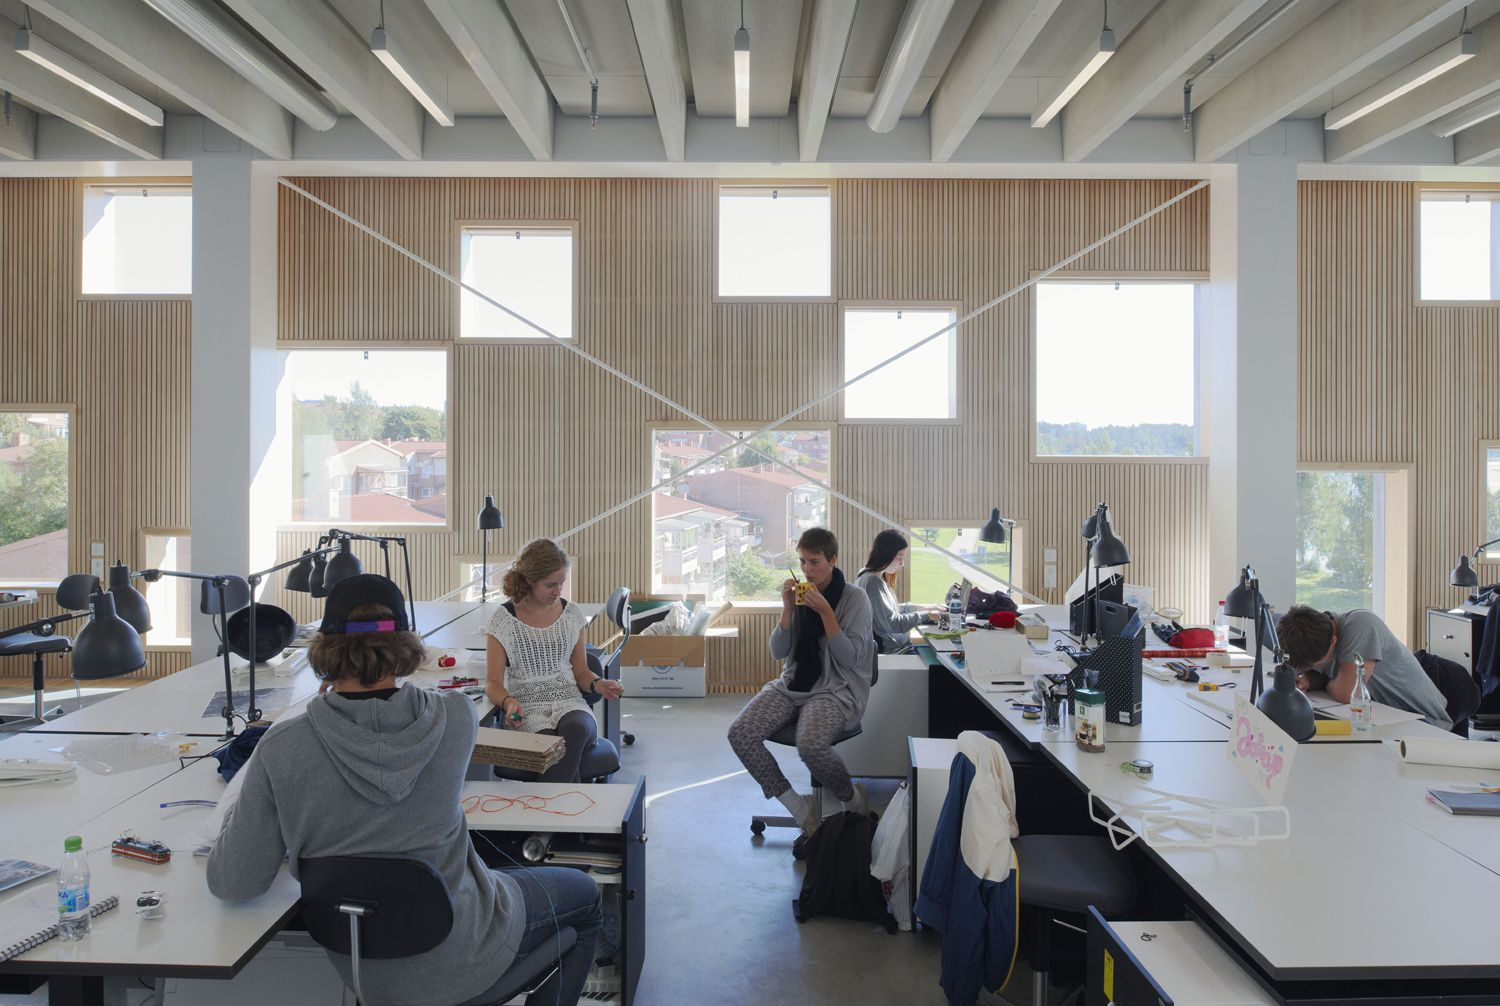 Henning larsen architects have completed the ume school for The interior design institute